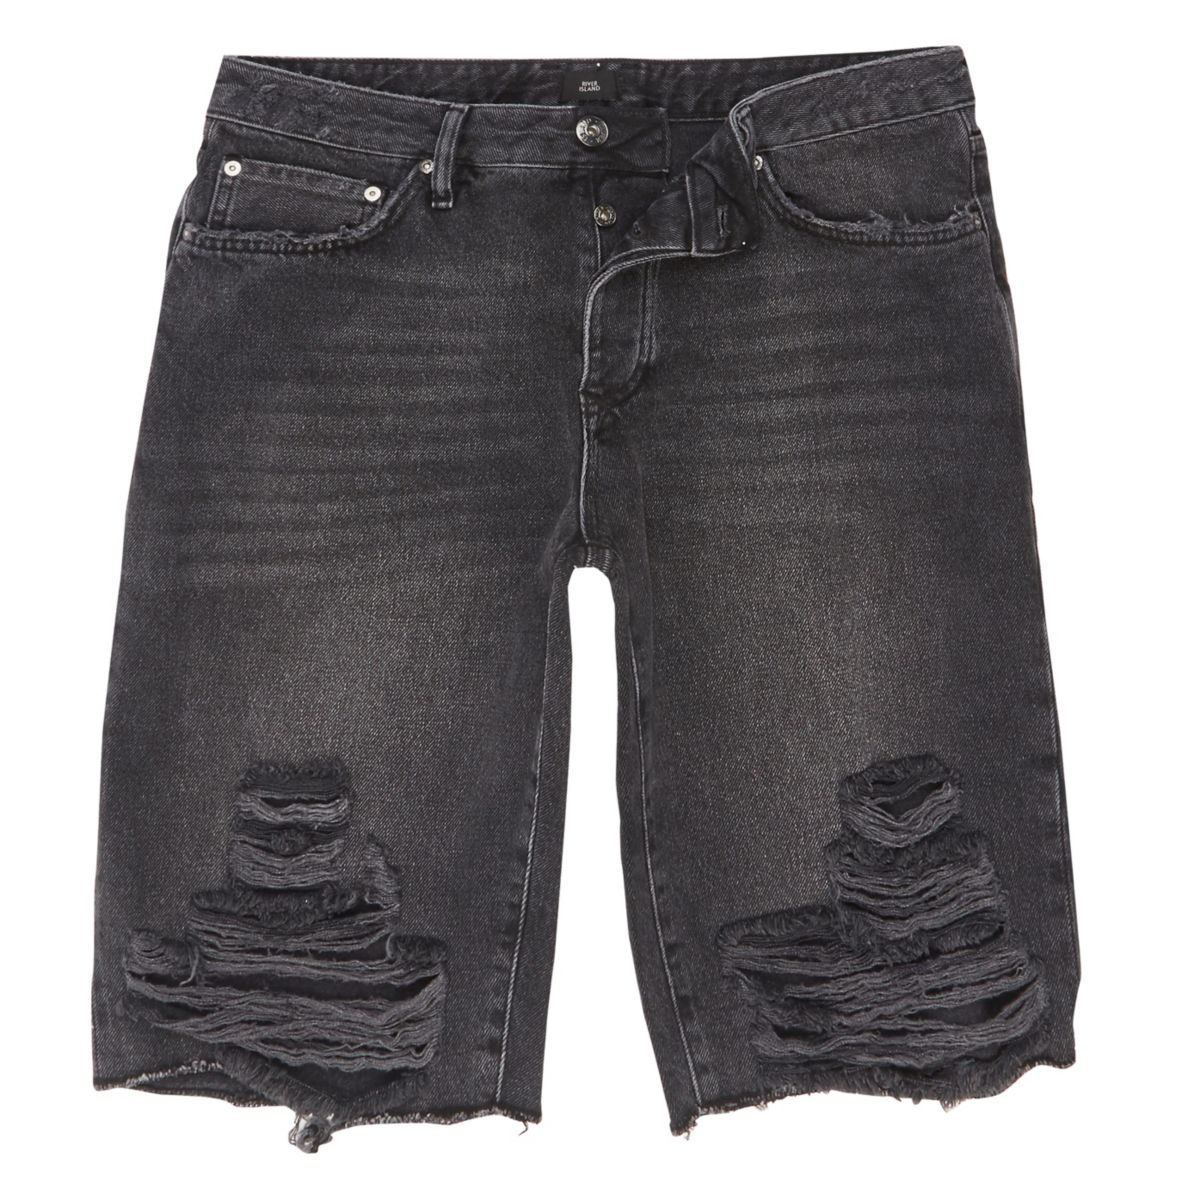 Black wash ripped knee denim shorts